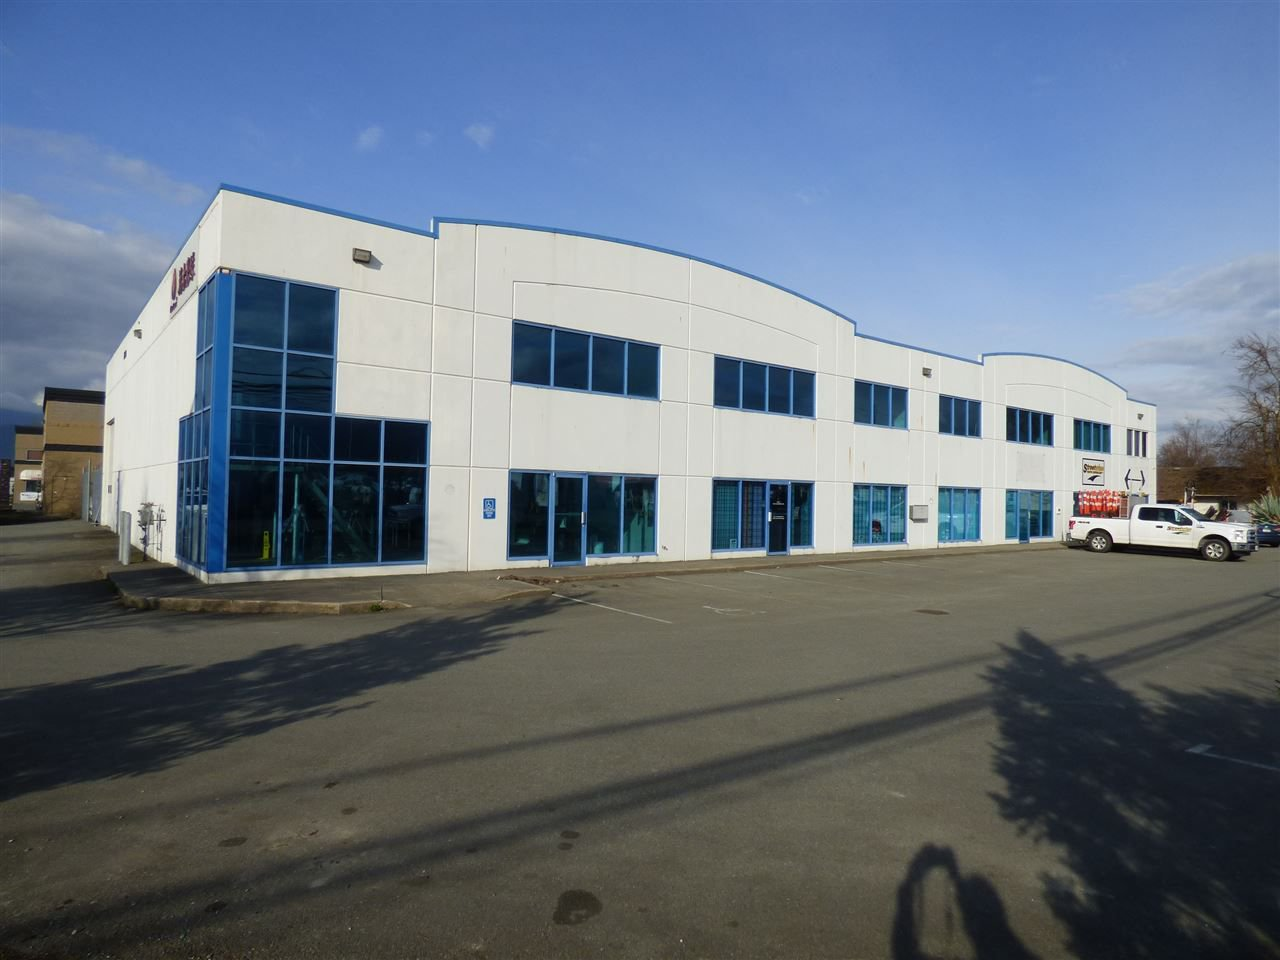 Main Photo: 7870 ENTERPRISE Drive in Chilliwack: Chilliwack Yale Rd West Industrial for sale : MLS®# C8018103